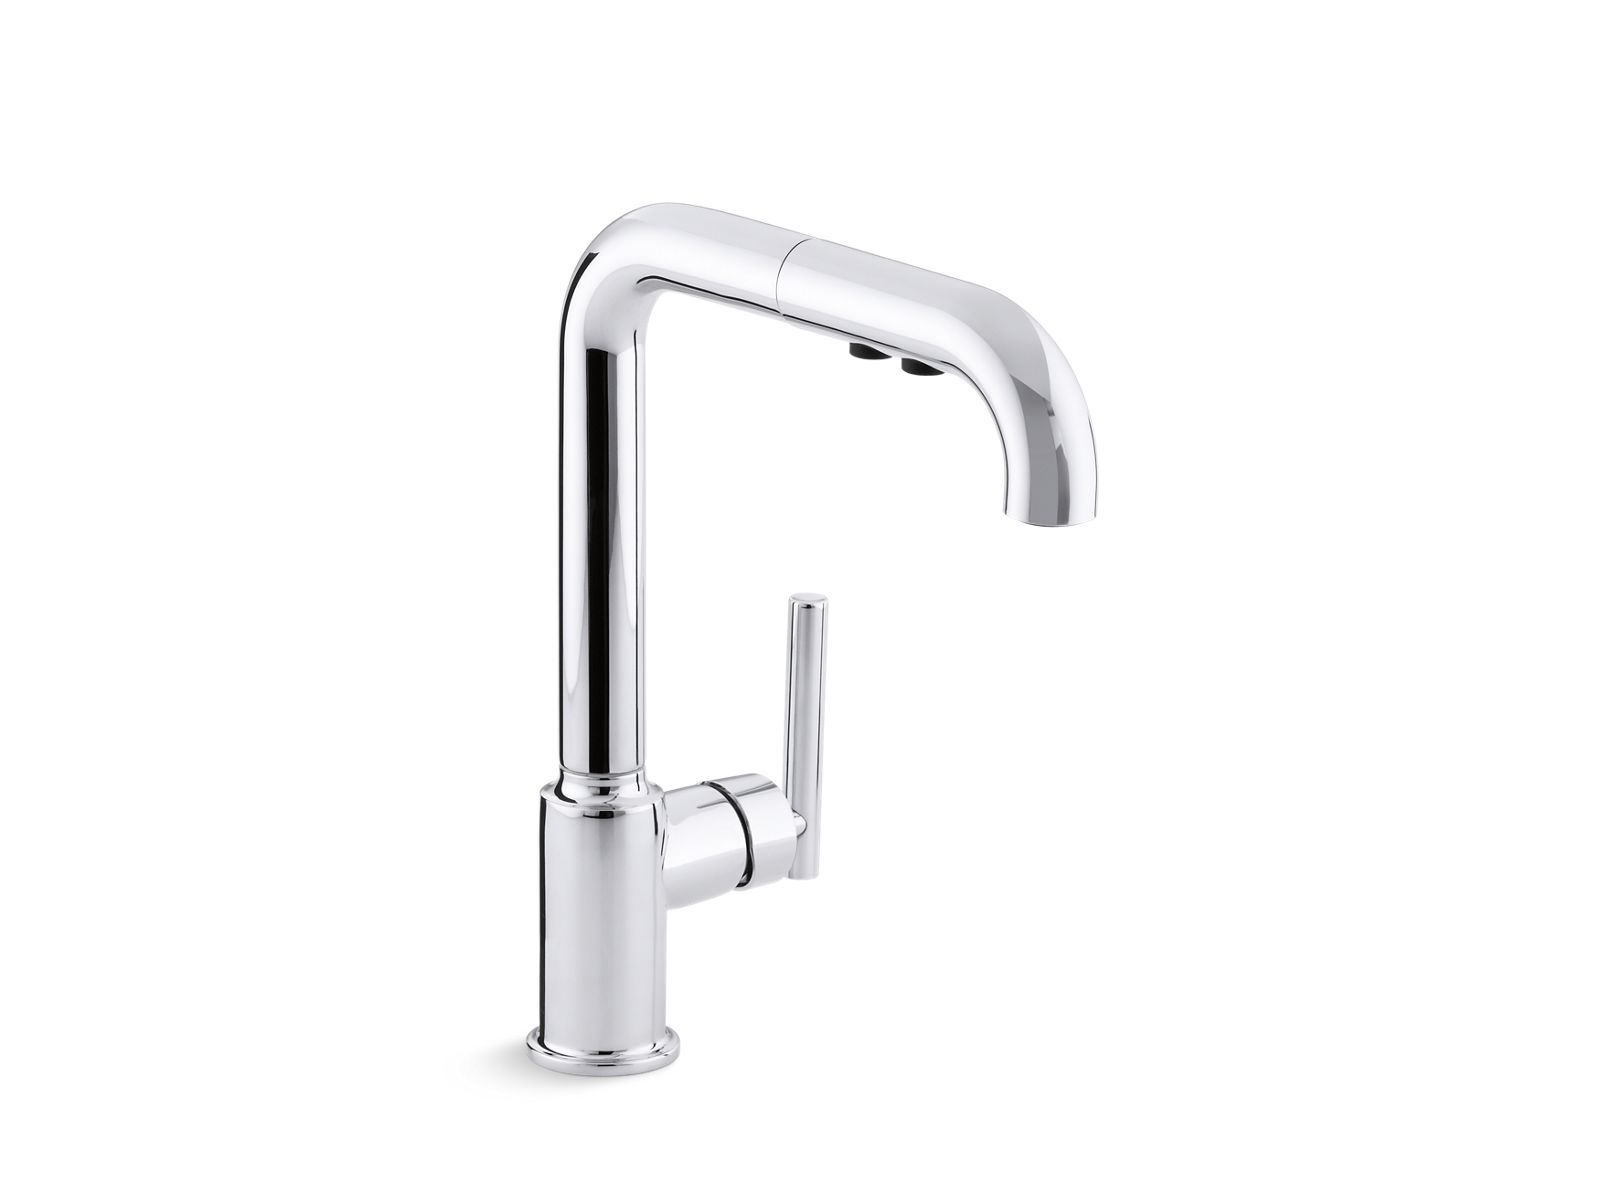 kohler purist kitchen faucet modern designs k 7505 single handle pull out spray sink bathroom and